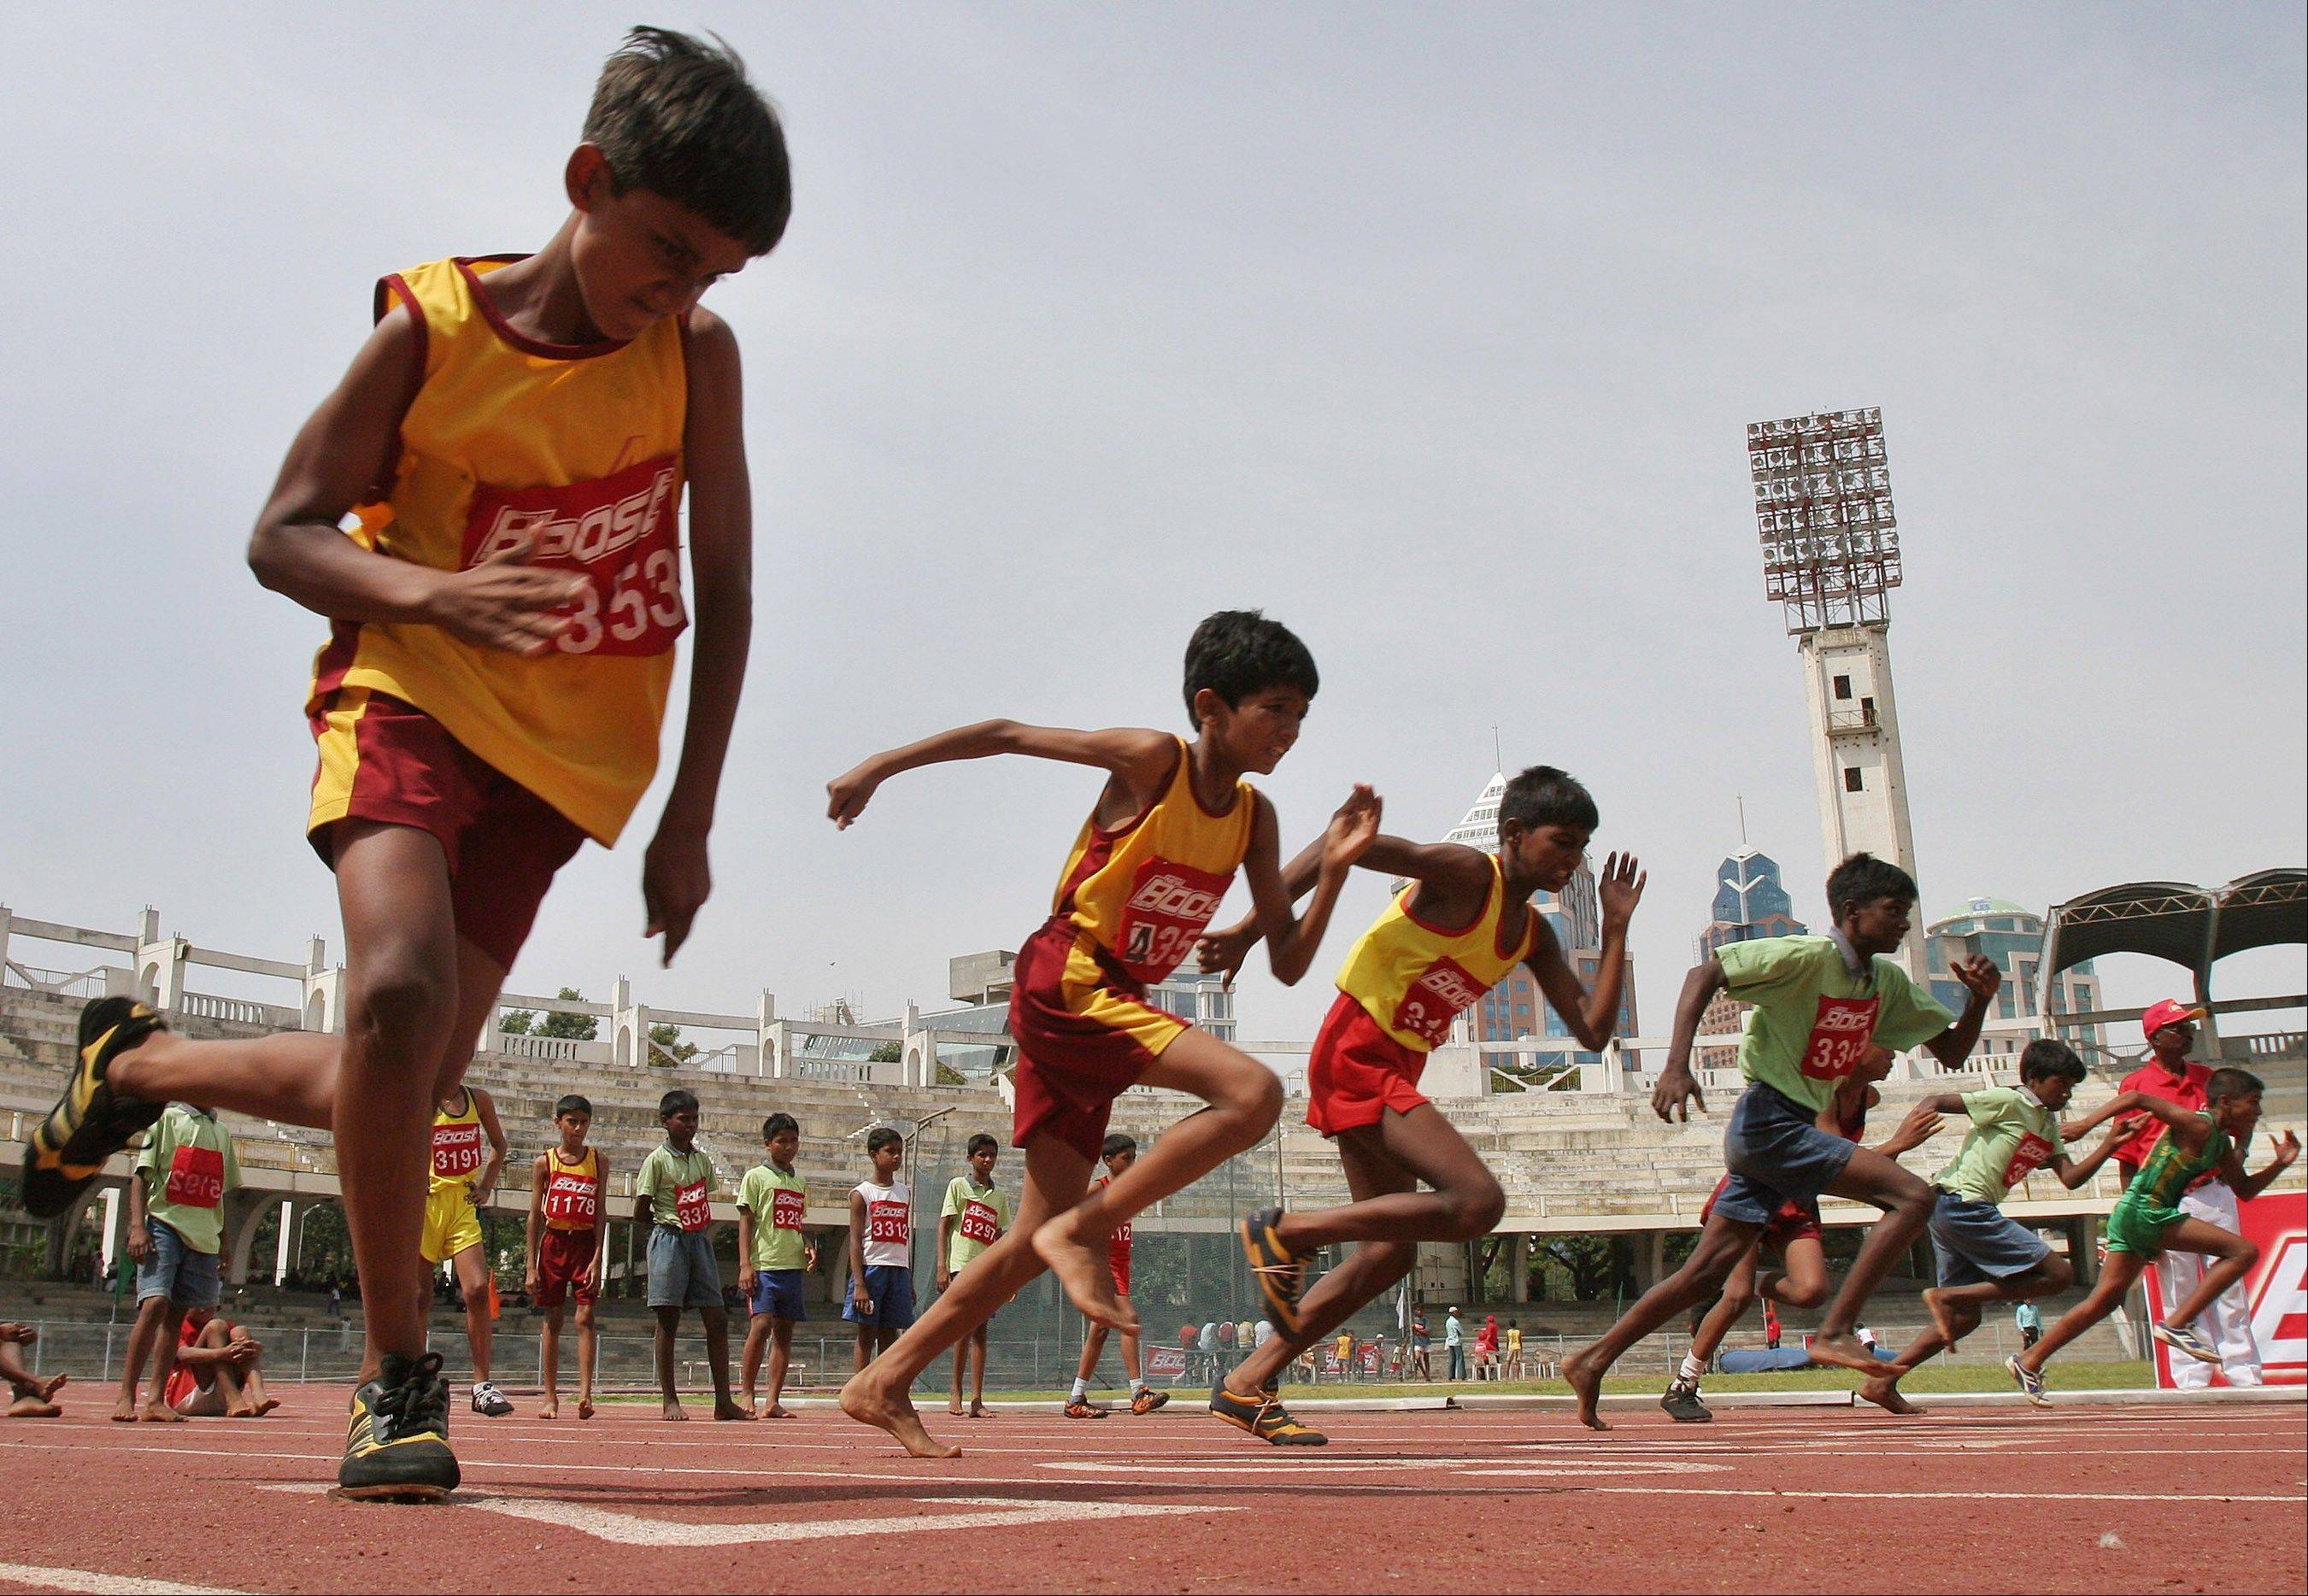 An analysis of studies on 250 million children around the world finds they don't run as fast or as far as their parents did when they were young. Research featured at the American Heart Association's annual conference on Tuesday showed that, on average, children 9 to 17 take 90 seconds longer to run a mile than their counterparts did 30 years ago.